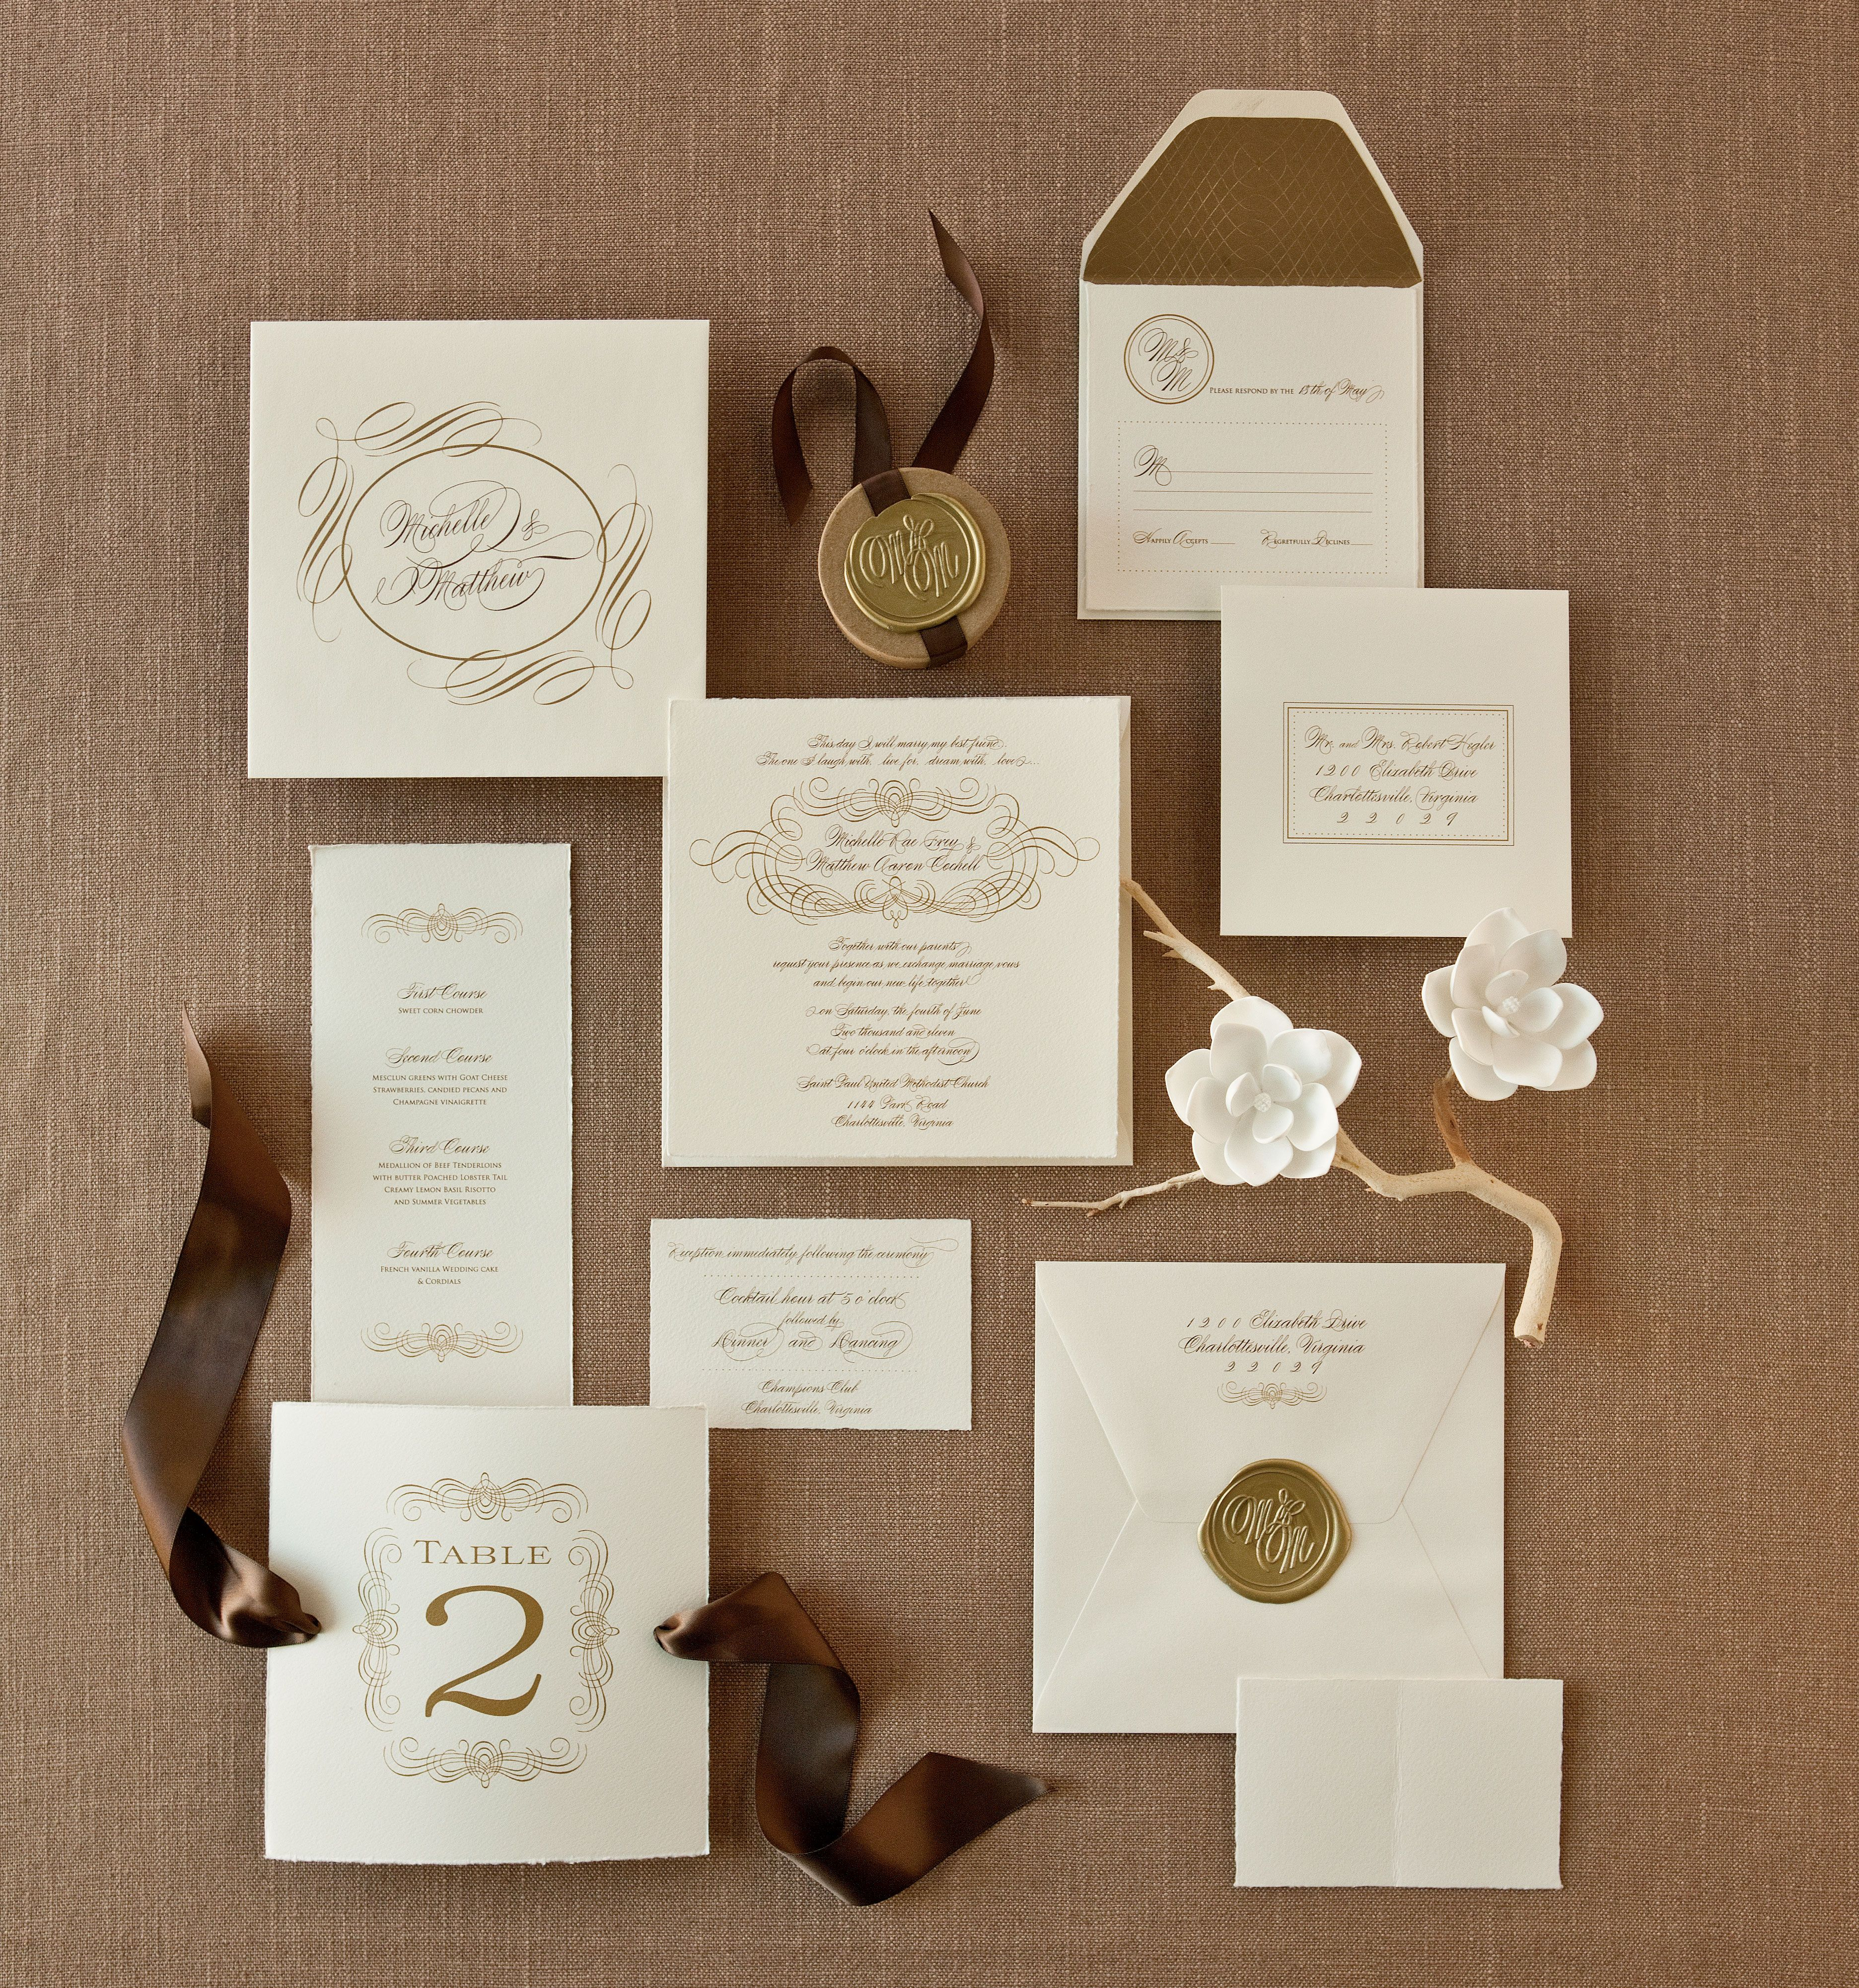 How to address wedding invitations formal wedding invitations how to address wedding invitations stopboris Image collections